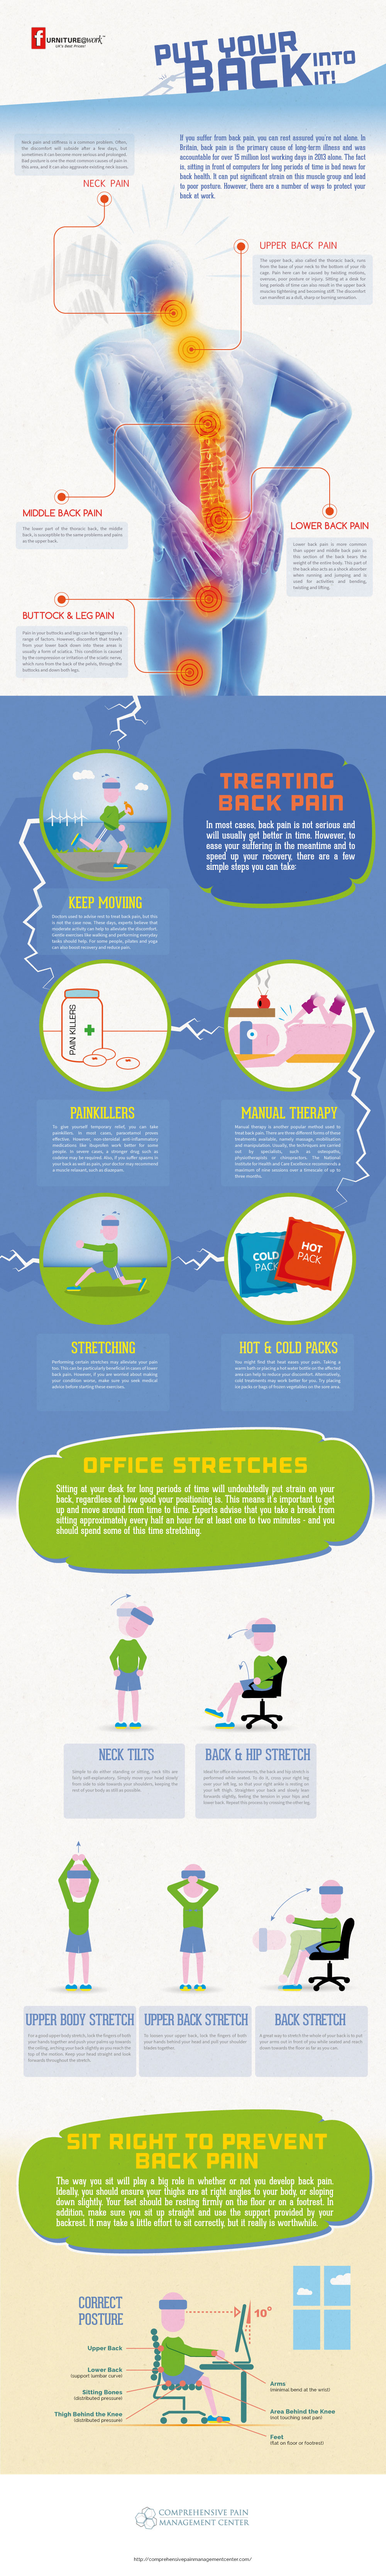 Infographic | ComprehensivePainManagementCenter.com